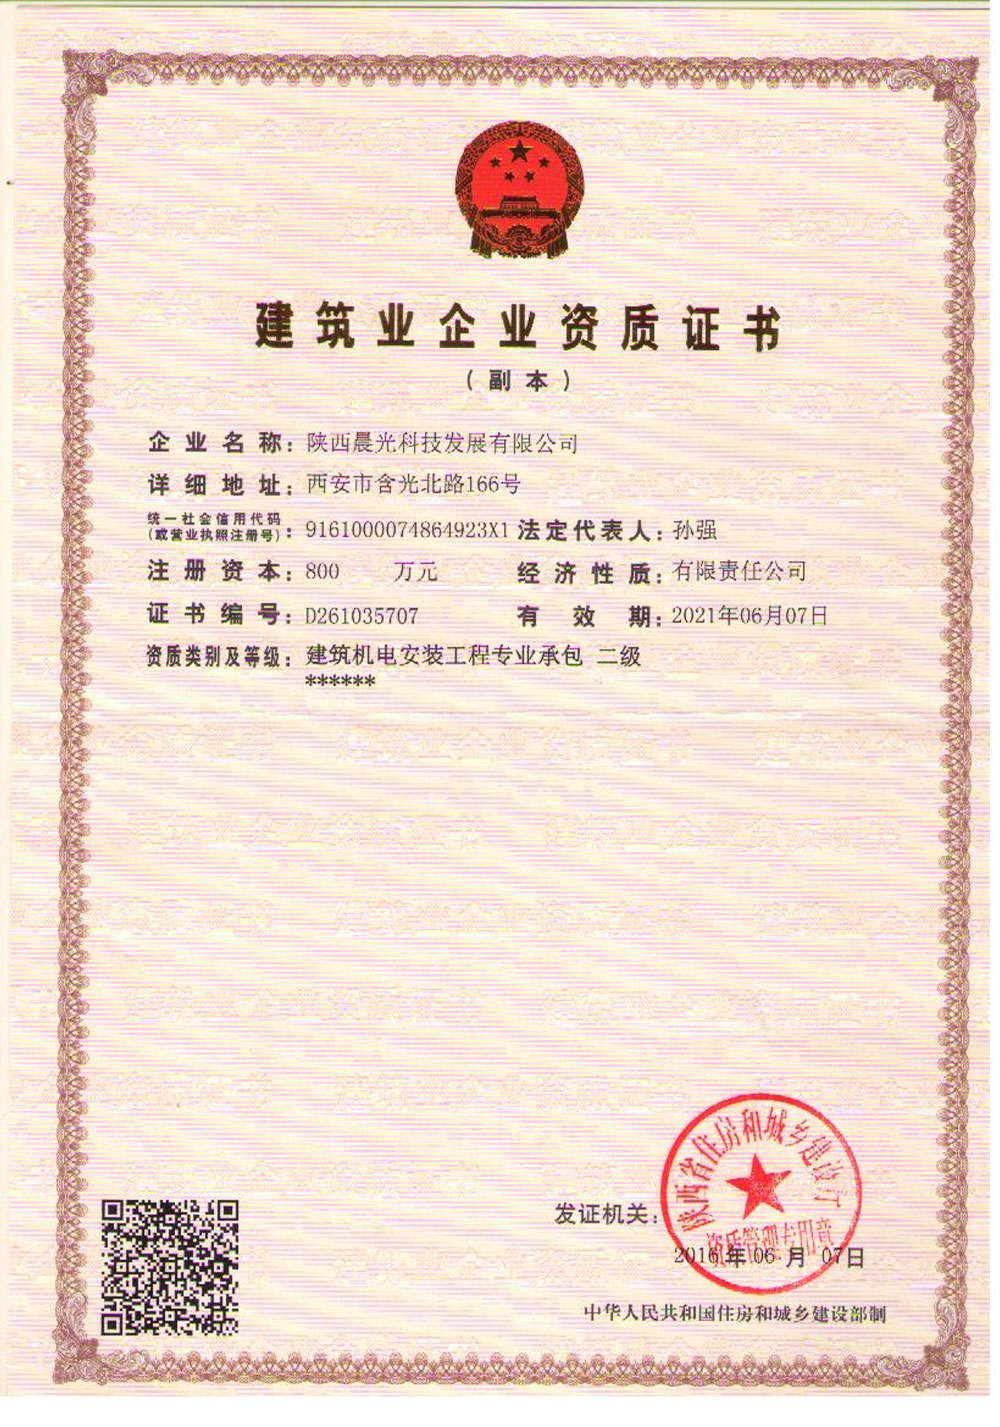 Business license1